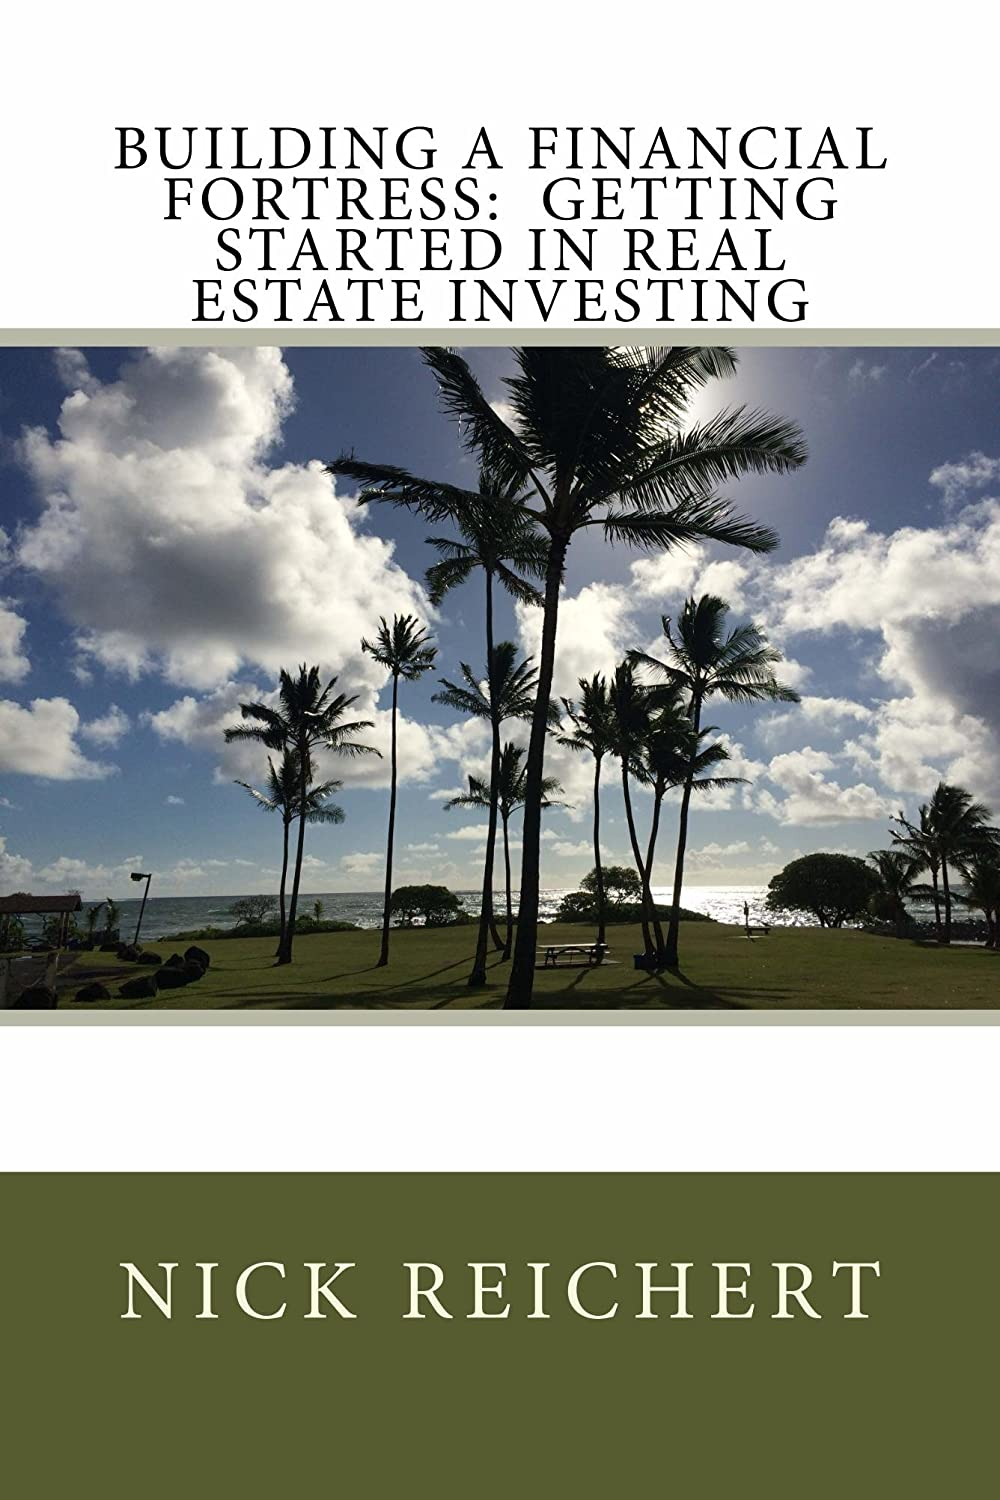 Real-Estate-Investing-For-Beginners-Cover